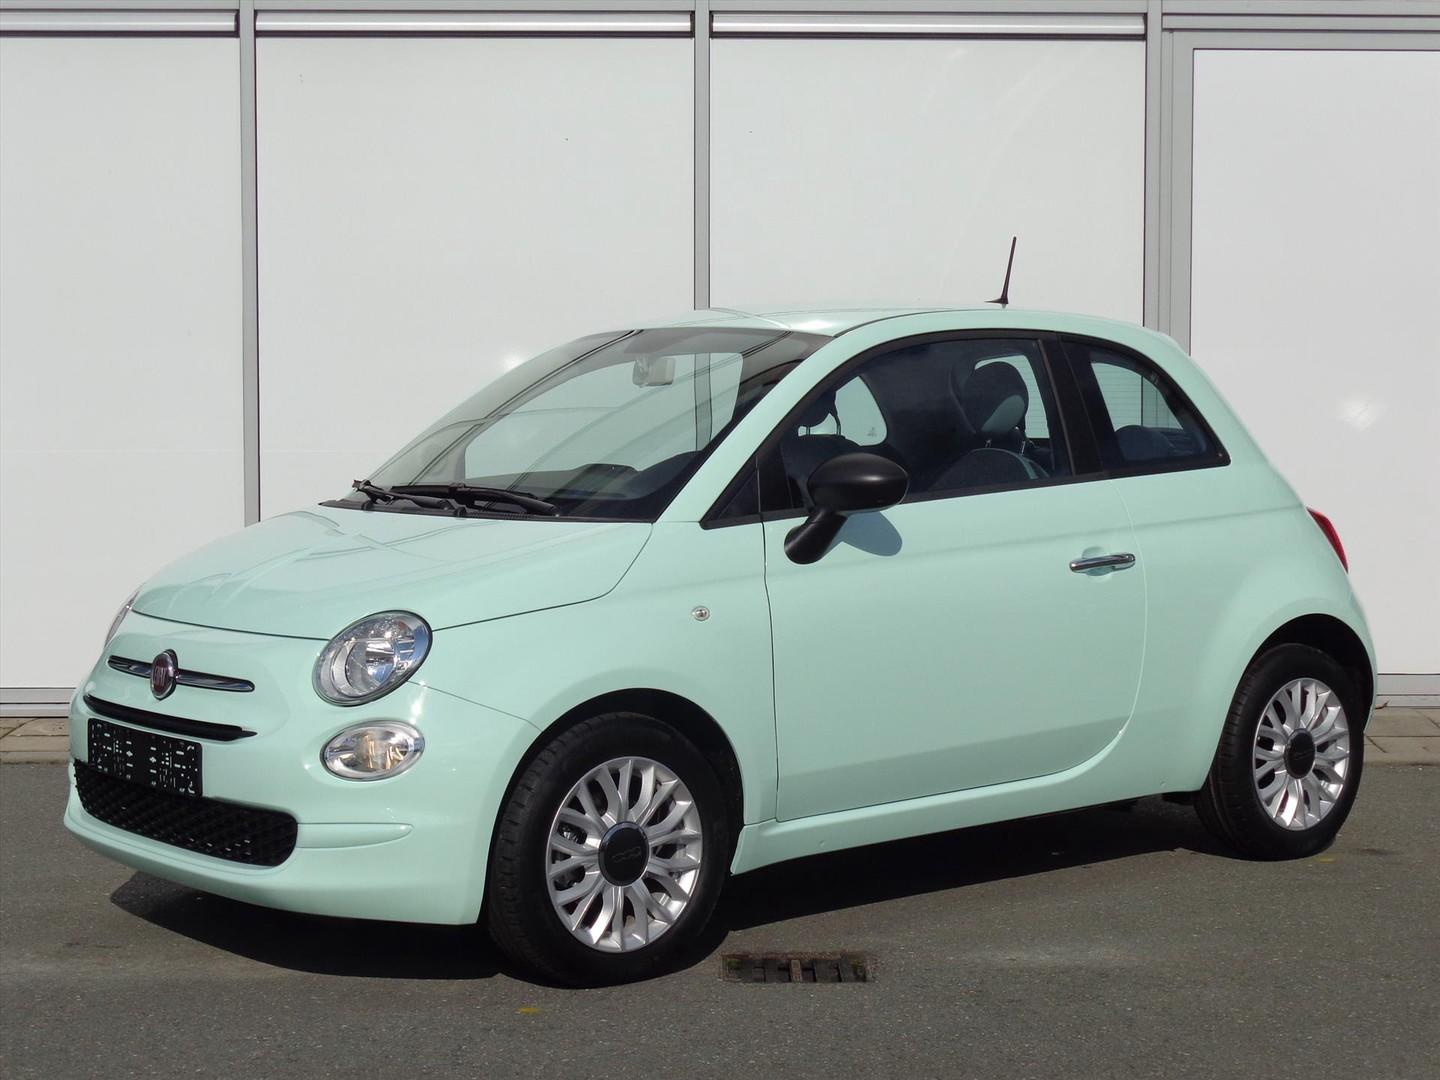 Fiat 500 Twinair turbo 85pk young